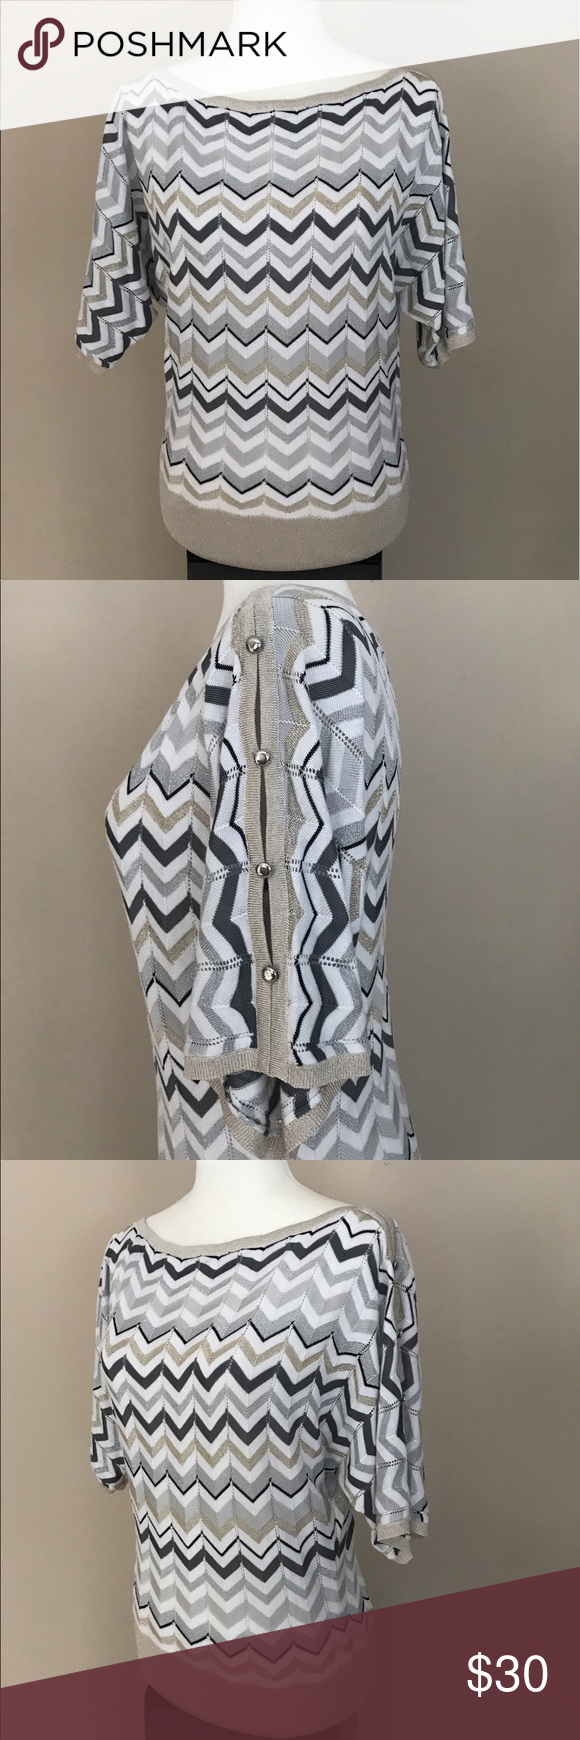 """🆕 NWOT-WHBM Gold Metallic Chevron Dolman Sleeve Size XS - This Lightweight Sweater Knit Material is in Perfect Flawless Condition - Has a Gold Band Bottom - Has a Chevron Print in Beautiful Colors Metallic White/Charcoal Grey/Silver/Gold/Oatmeal - Has Dolman Sleeves with Cutouts & Silver Button Detailing (shown in 2nd picture) - Approximate Measurements are: Length from Shoulder to Bottom Hem is 25"""" & Bust from Armpit to Armpit is 18"""" White House Black Market Sweaters Crew & Scoop Necks"""